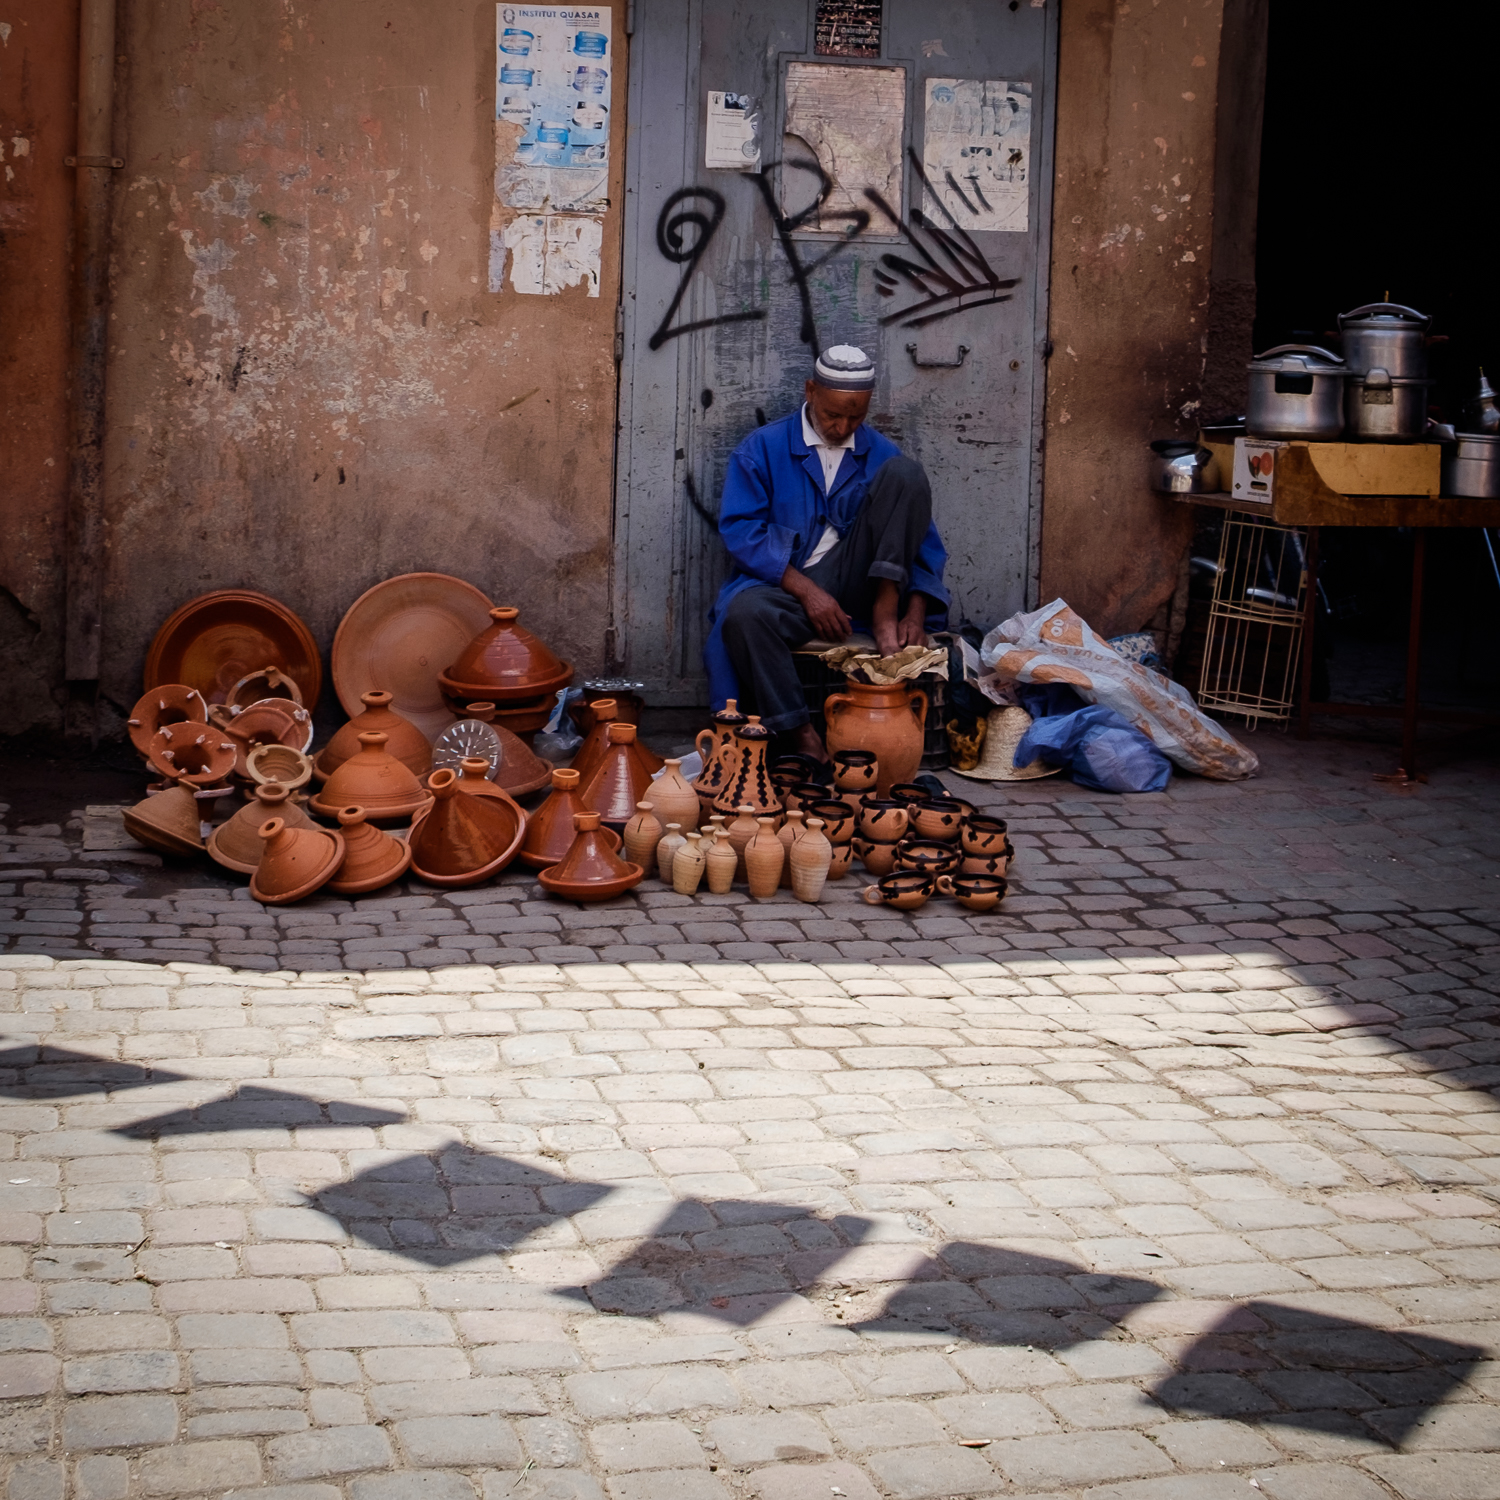 Christopher-Swan-Marrakech-23.jpg